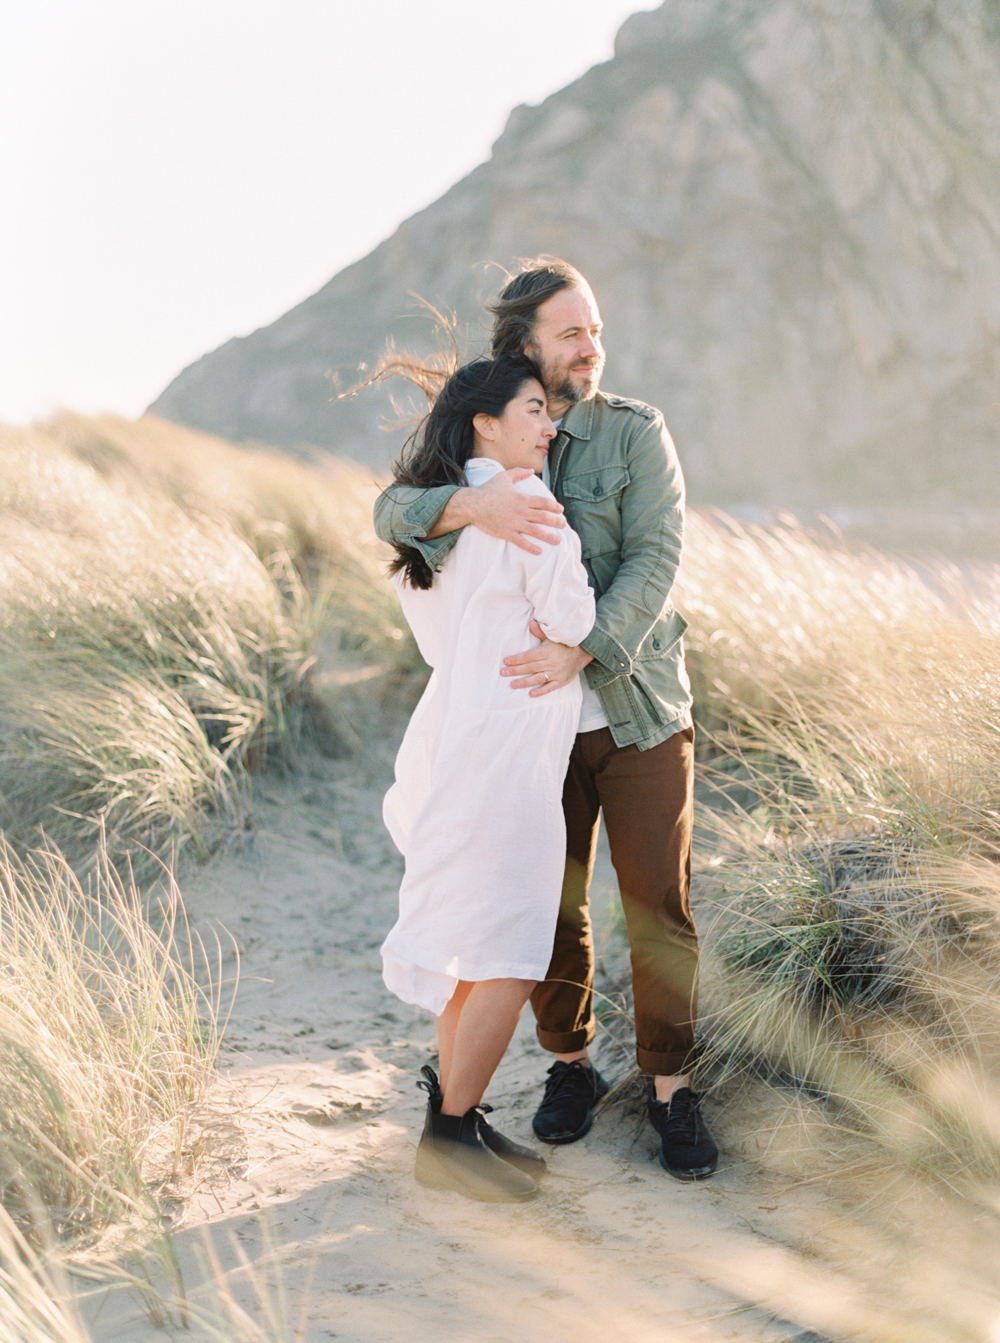 Big sur Elopement on Film